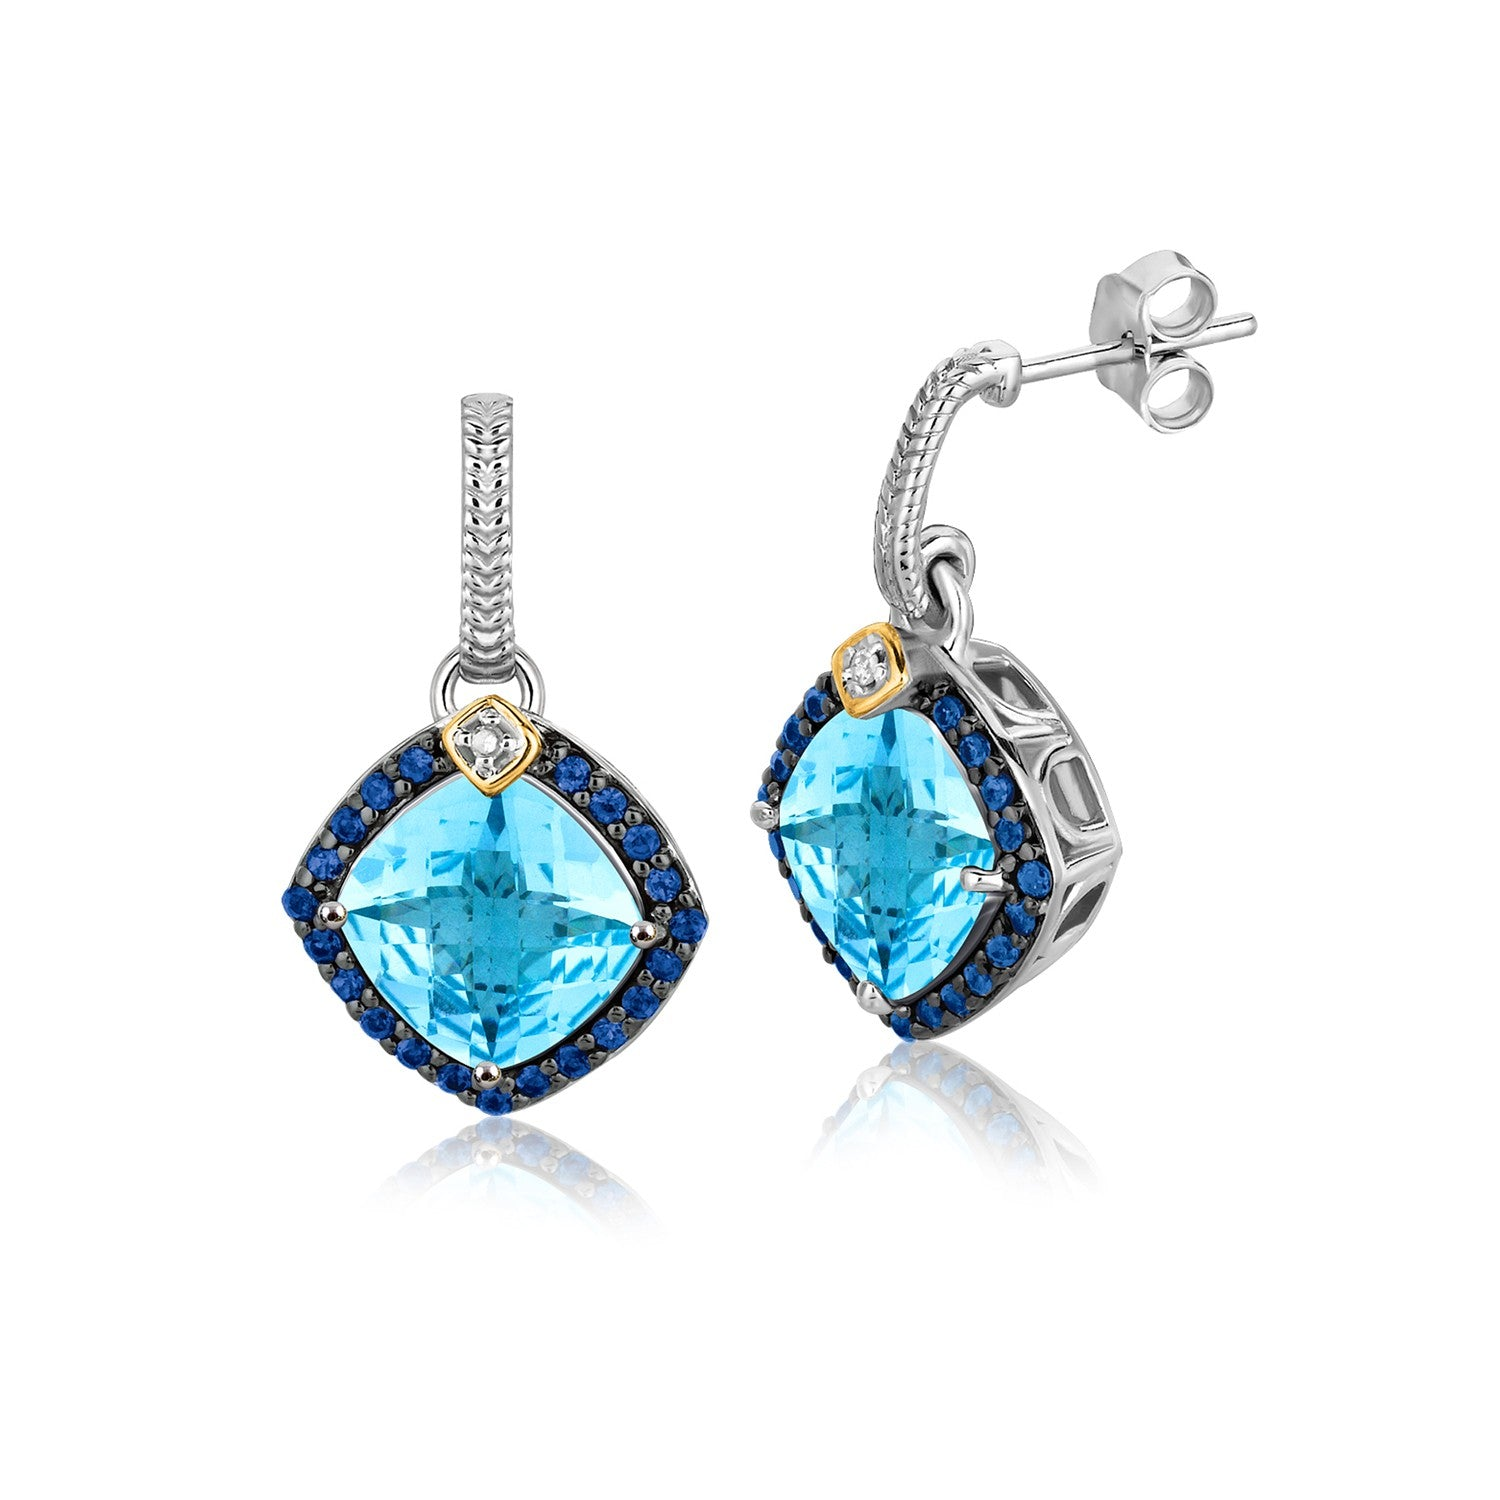 Original New York Style  18K Yellow Gold and Sterling Silver Blue Tone Multi Gem Earrings (.43 ct. tw.)